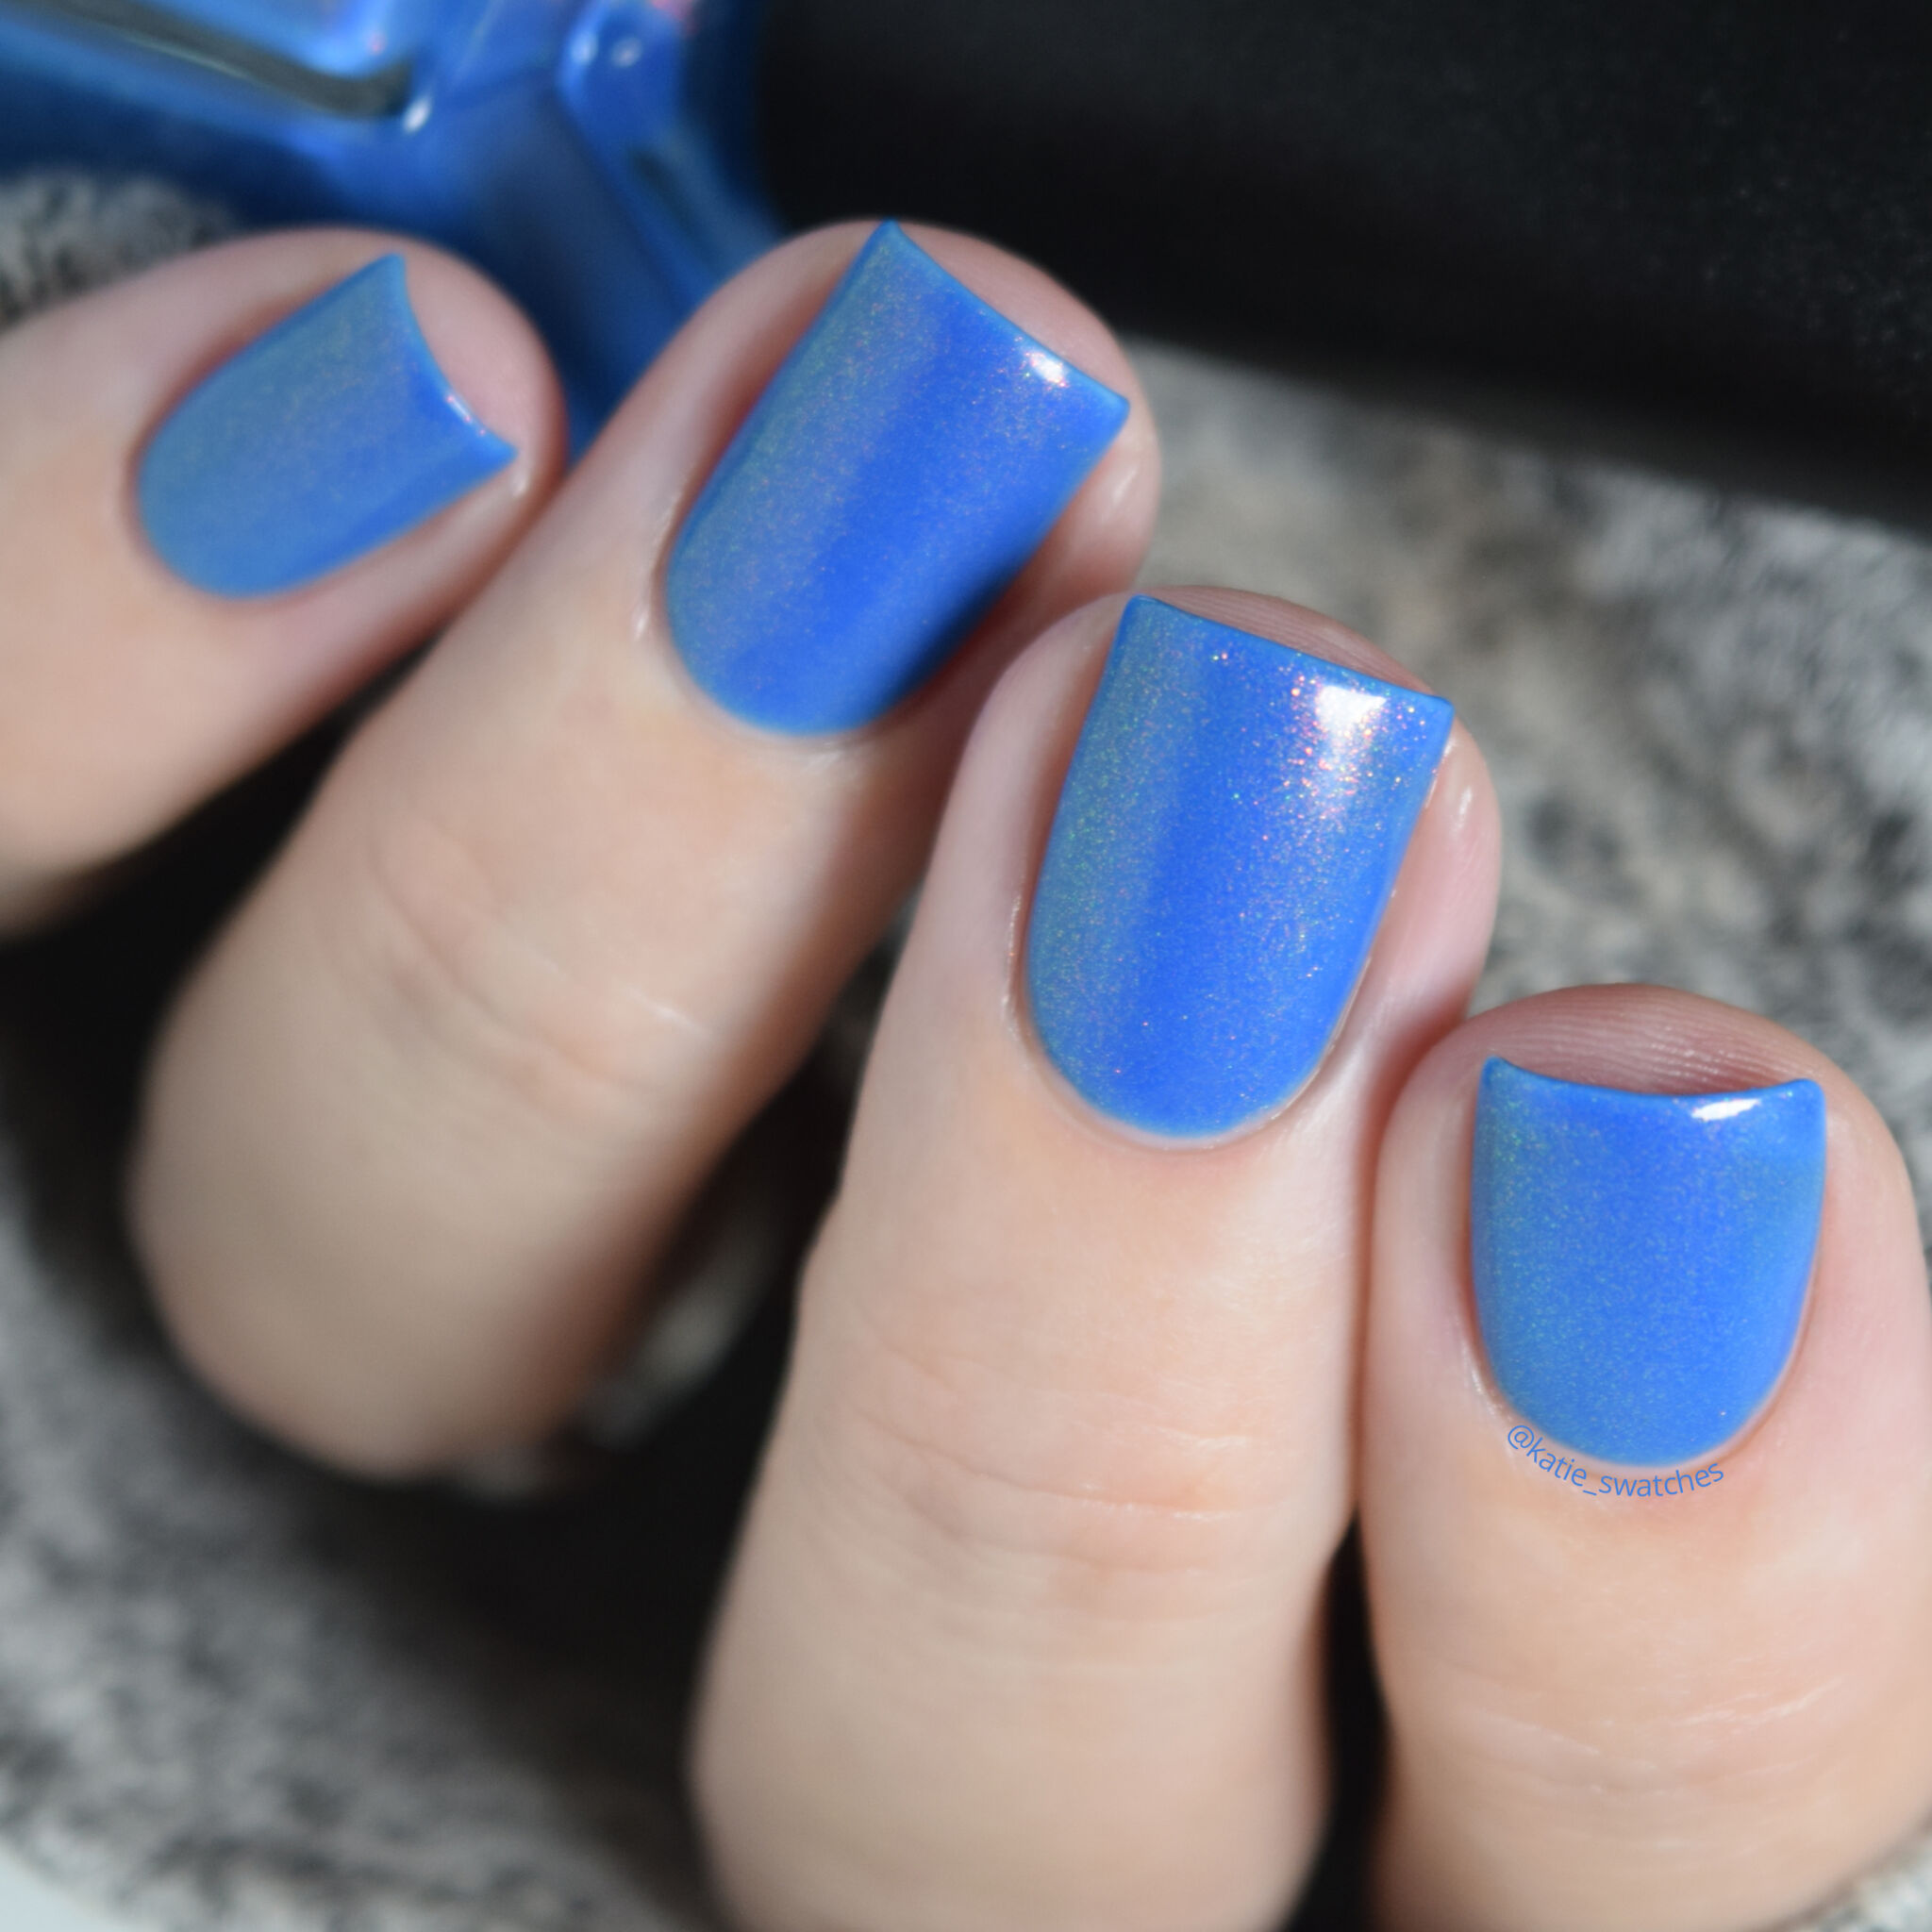 Ethereal Lacquer - Elsewhere nail polish swatch - Indie Expo Canada IEC VIP Bag Exclusive 2019